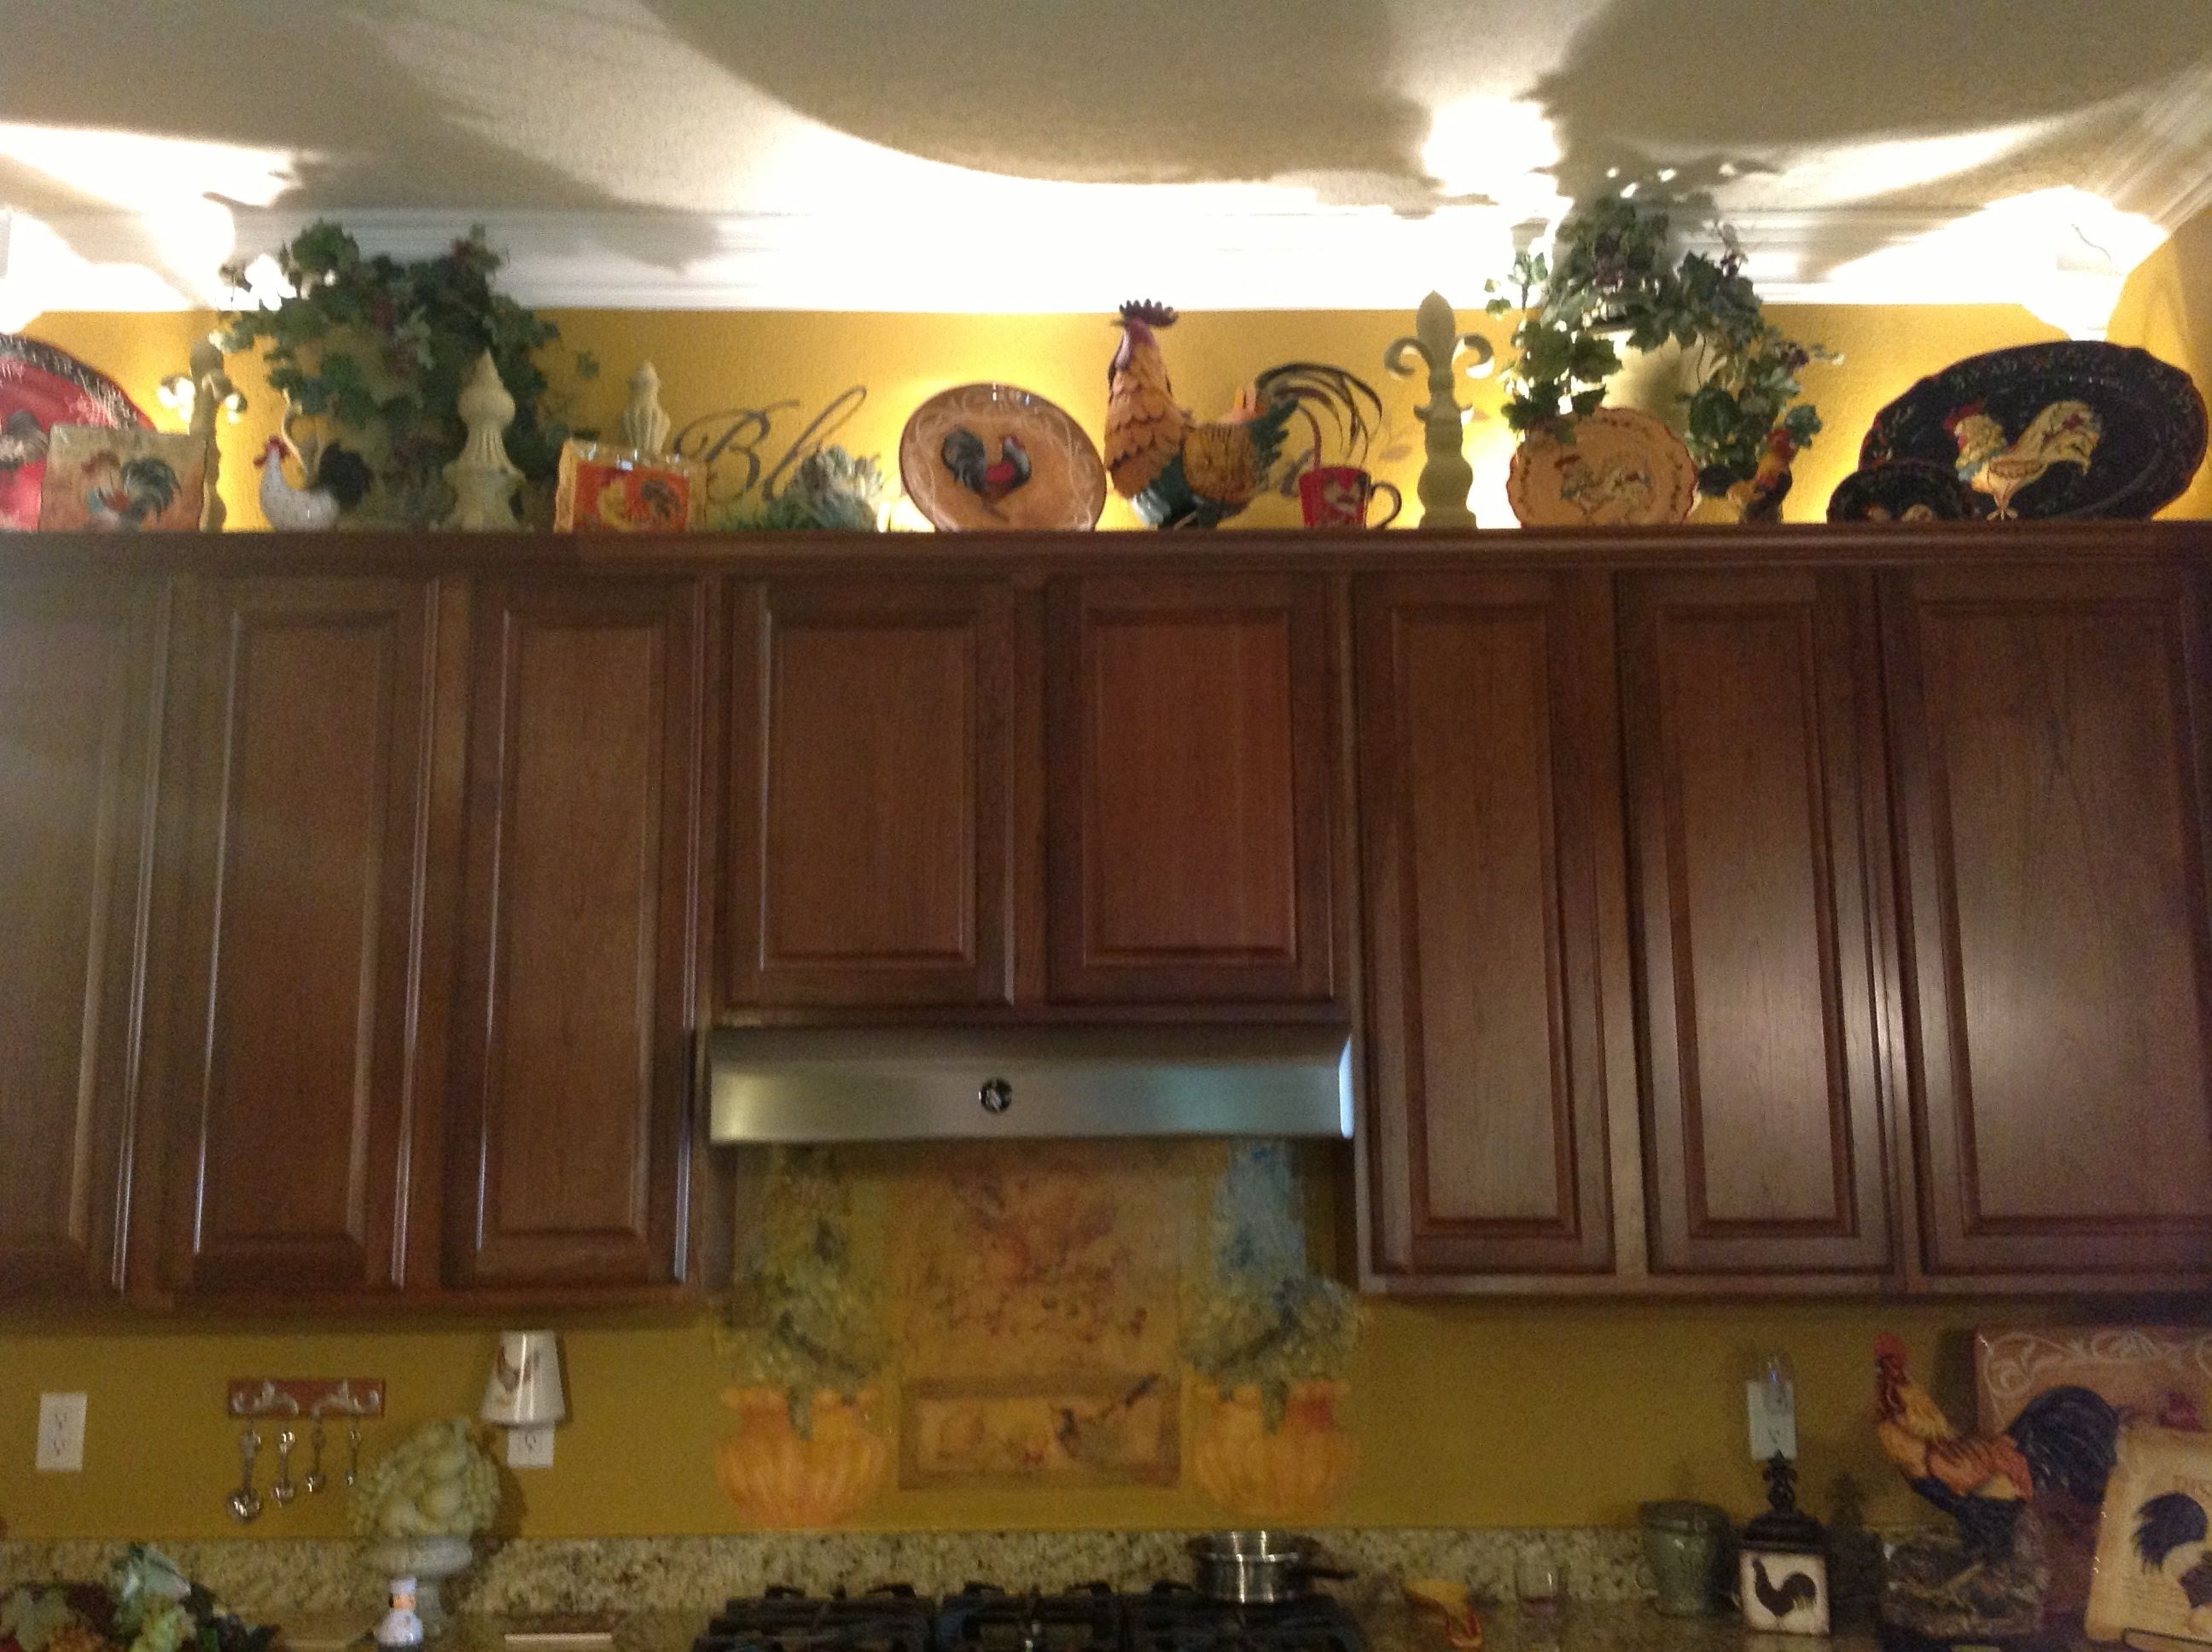 Chicken Decor For Kitchen Door Hinges Over The Cabinets Flower Arrangements By